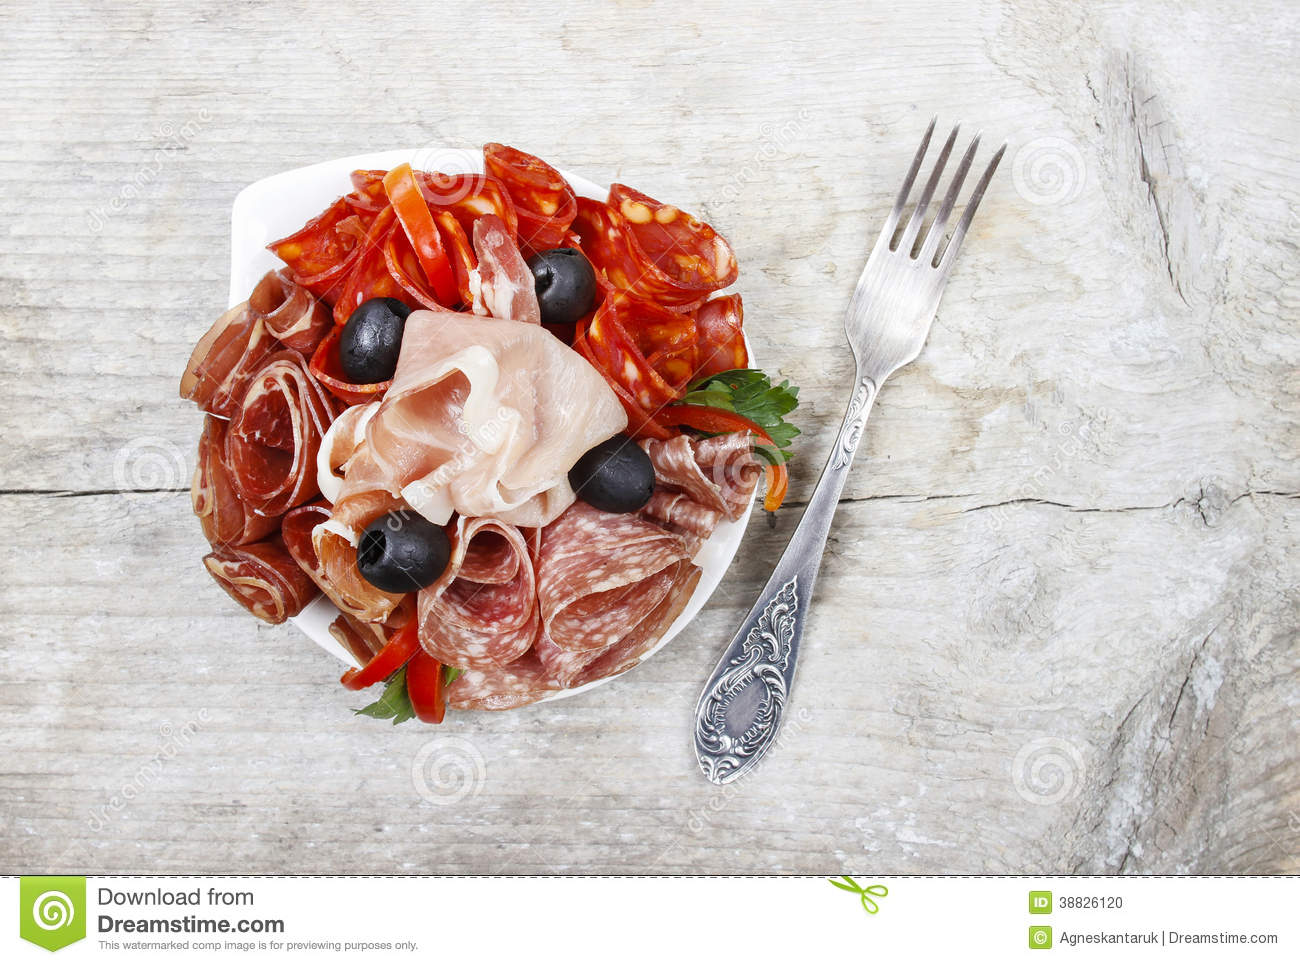 Delicious sliced ham. Party platter